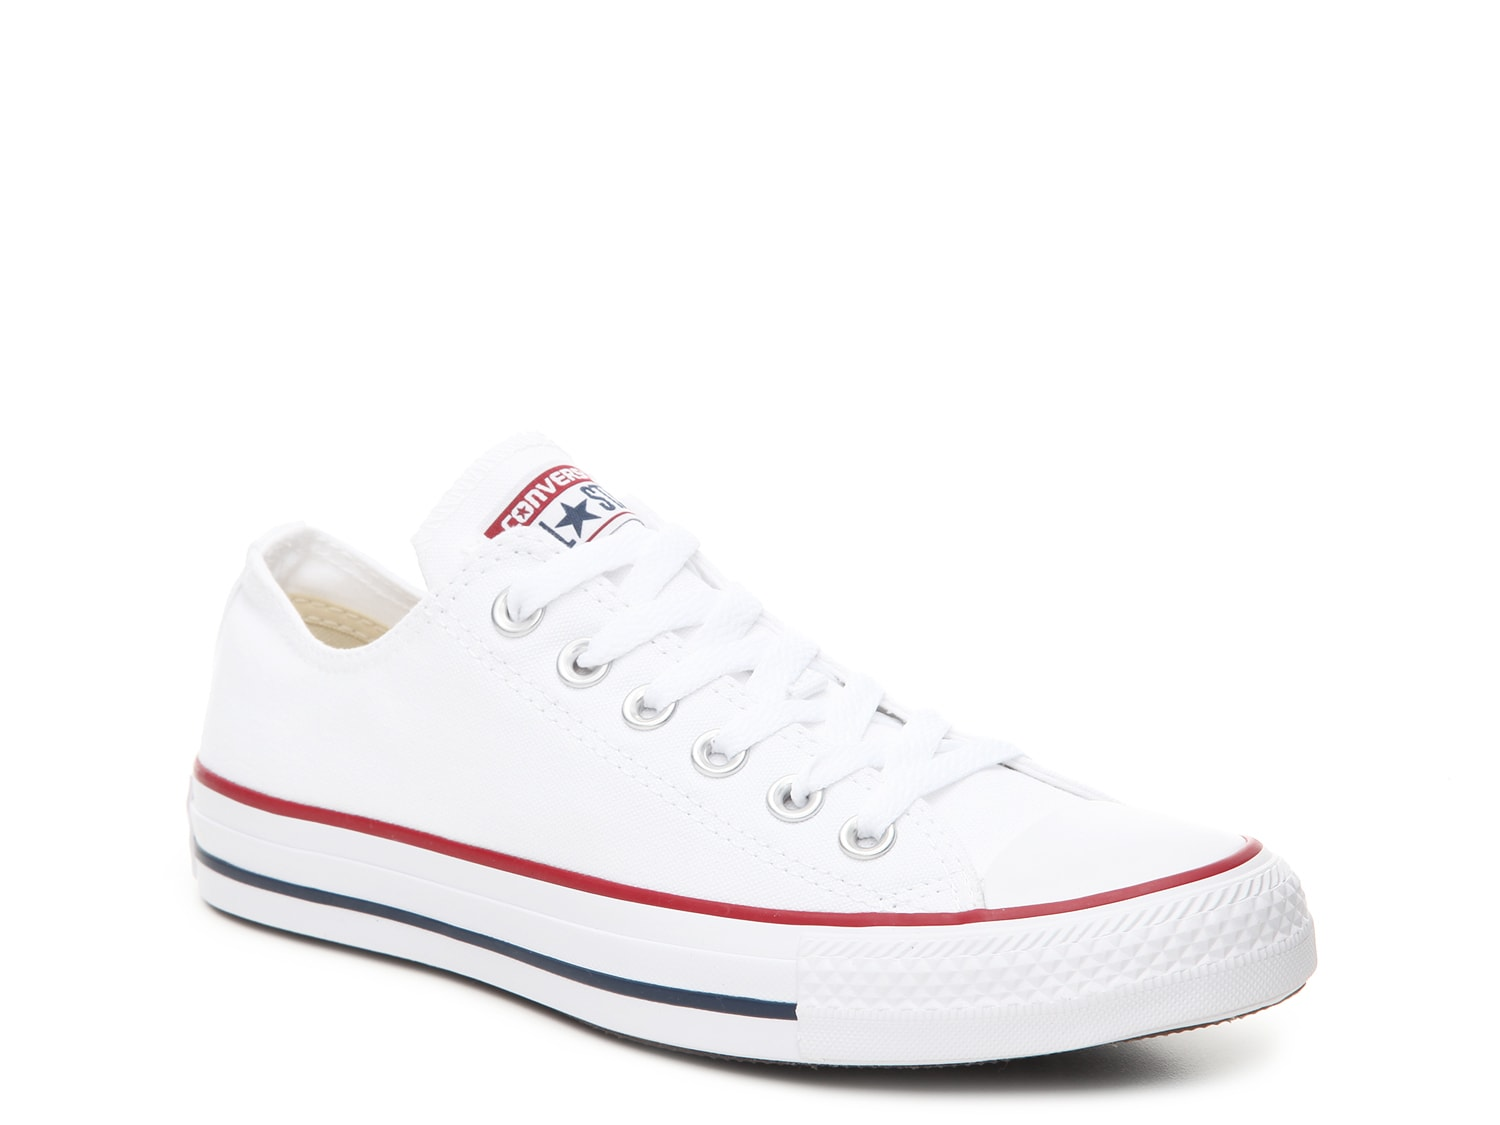 - Converse Shoes High Top & Low Top Sneakers Chuck Taylors DSW